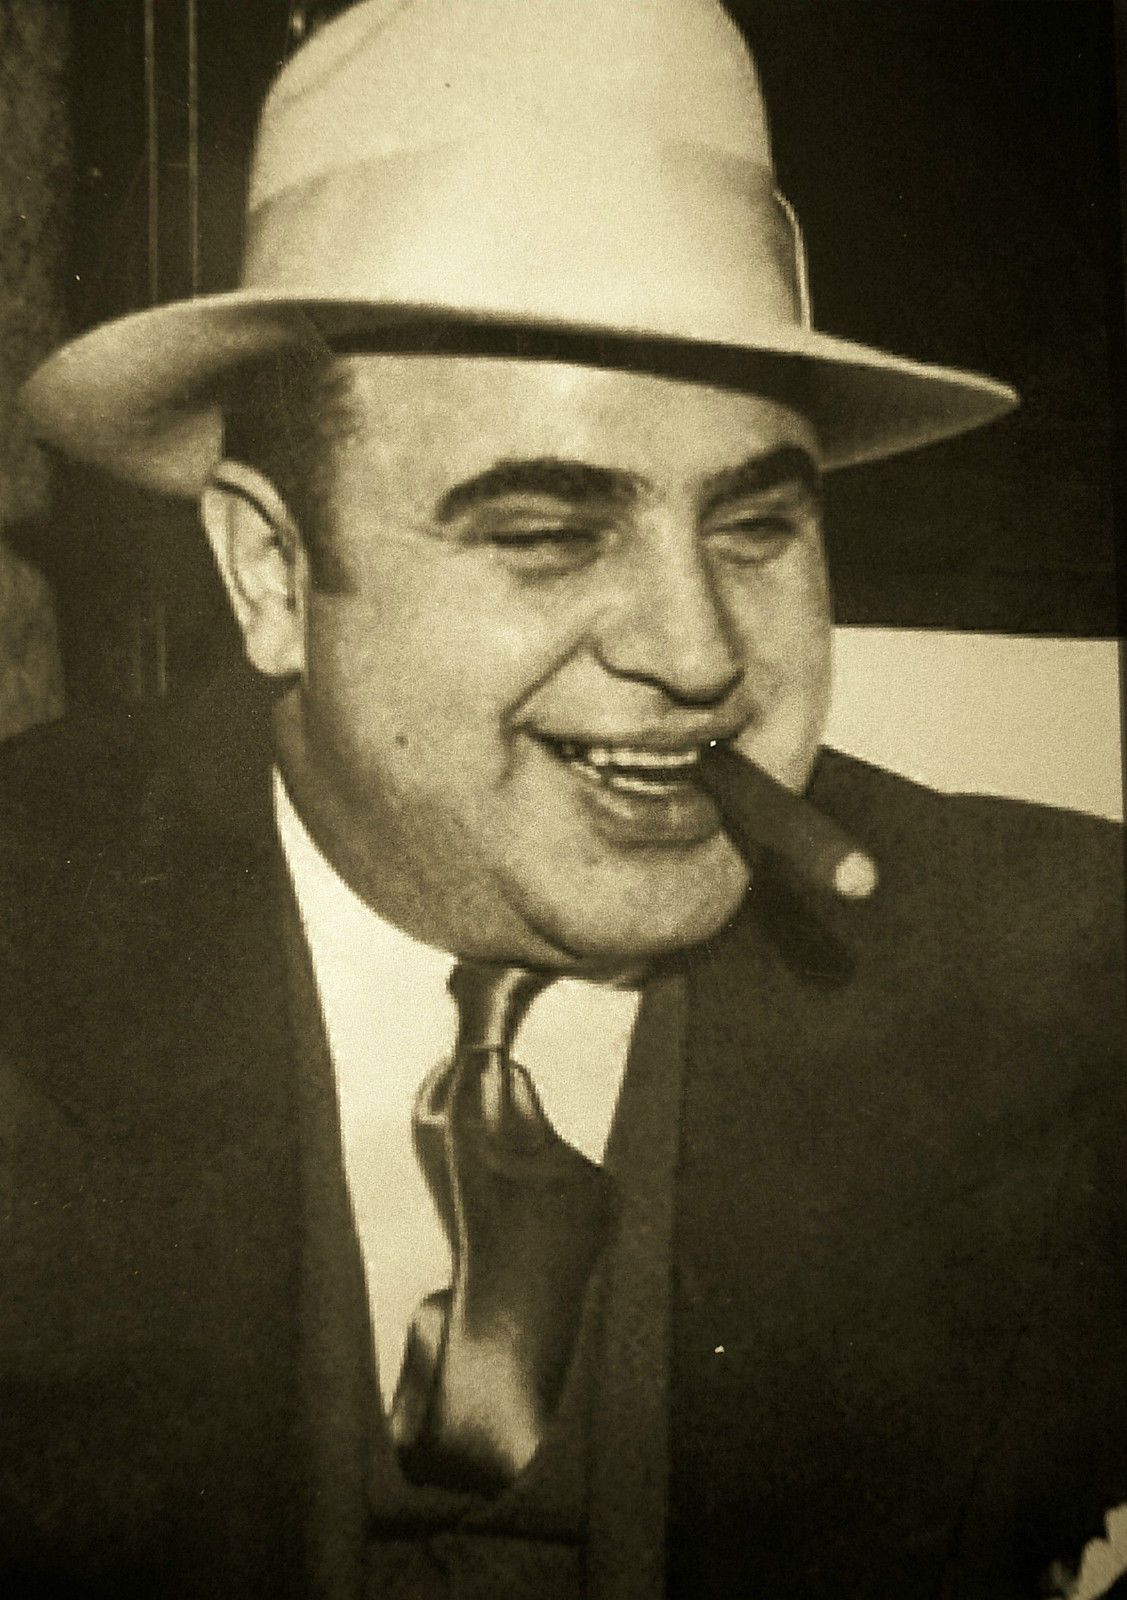 Collectibles Clever Frankie Yale 8x10 Photo Mafia Organized Crime Scene Mobster Mob Picture